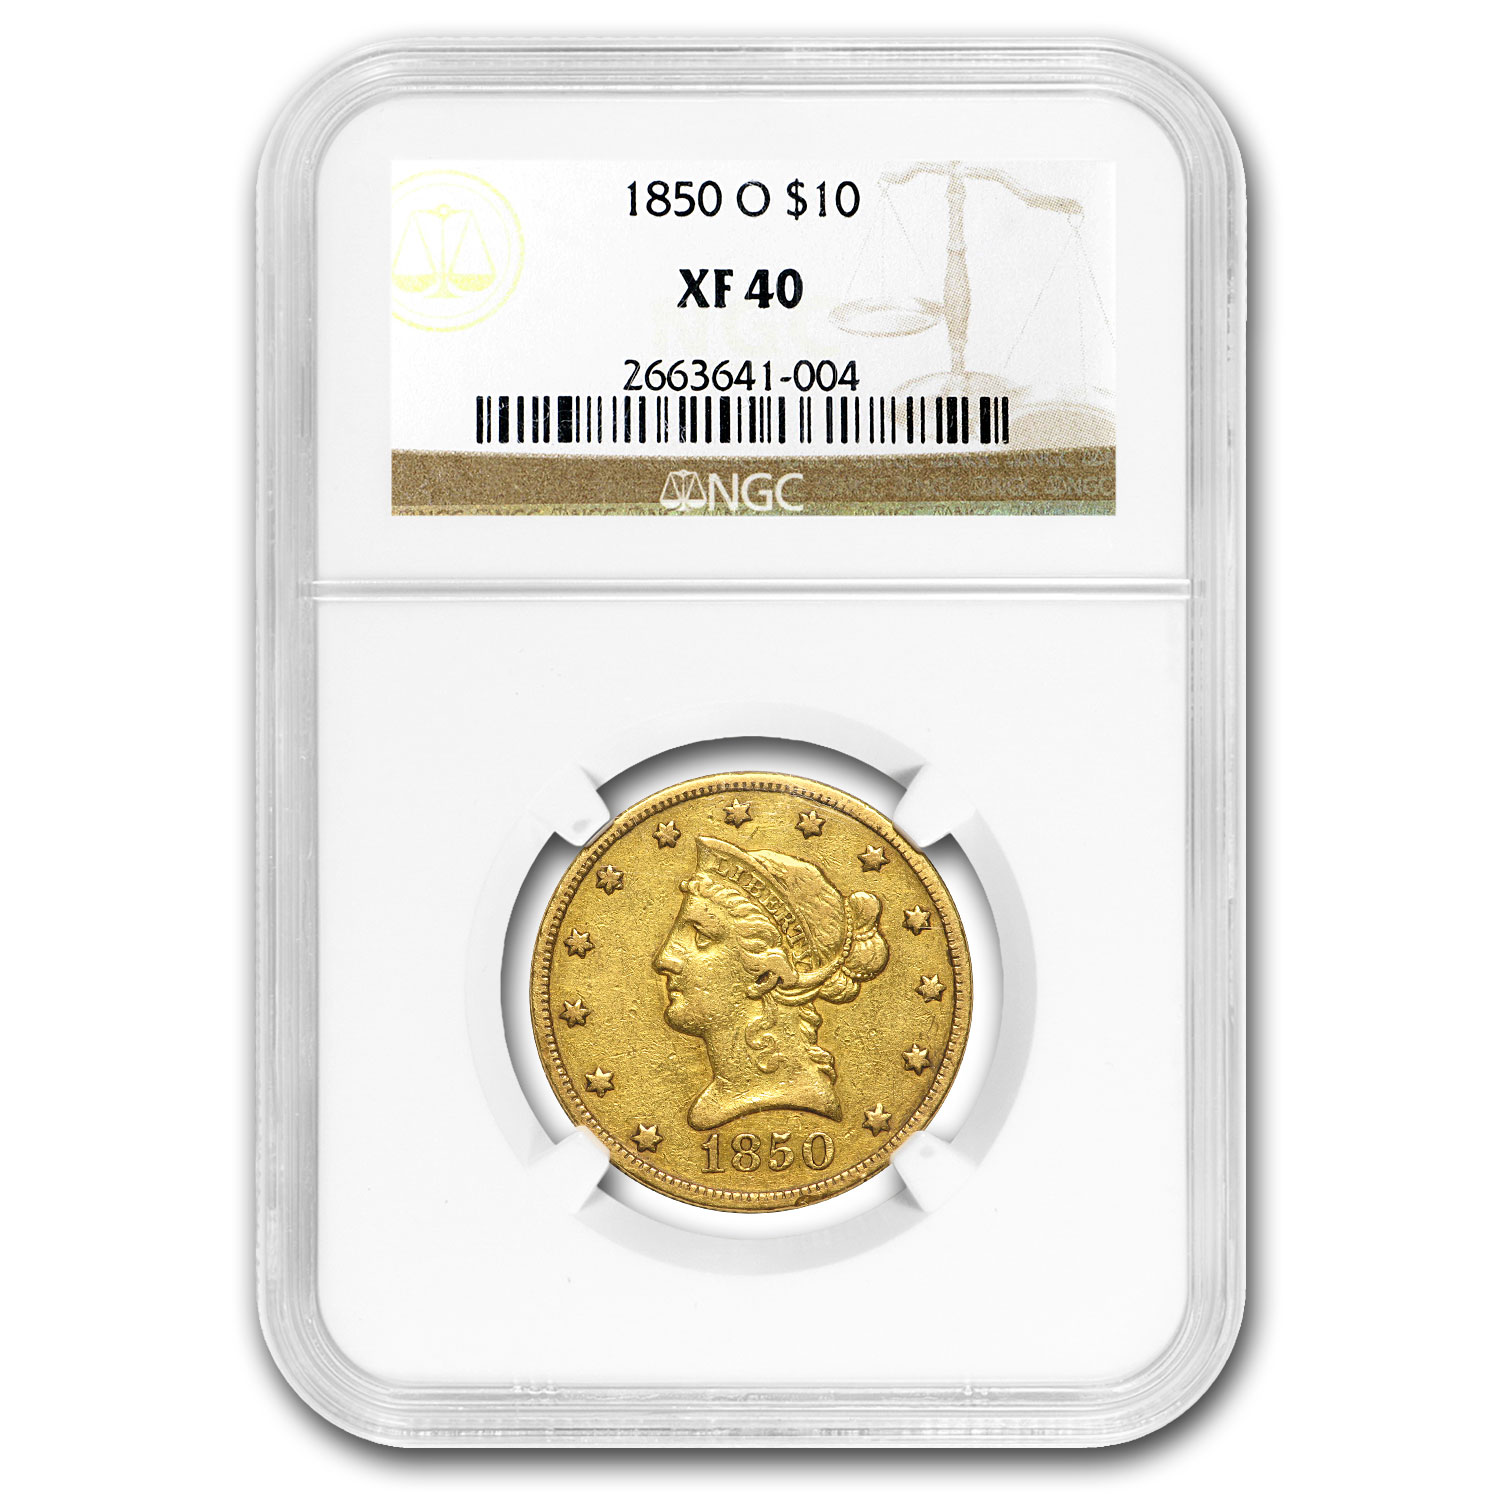 1850-O $10 Liberty Gold Eagle XF-40 NGC